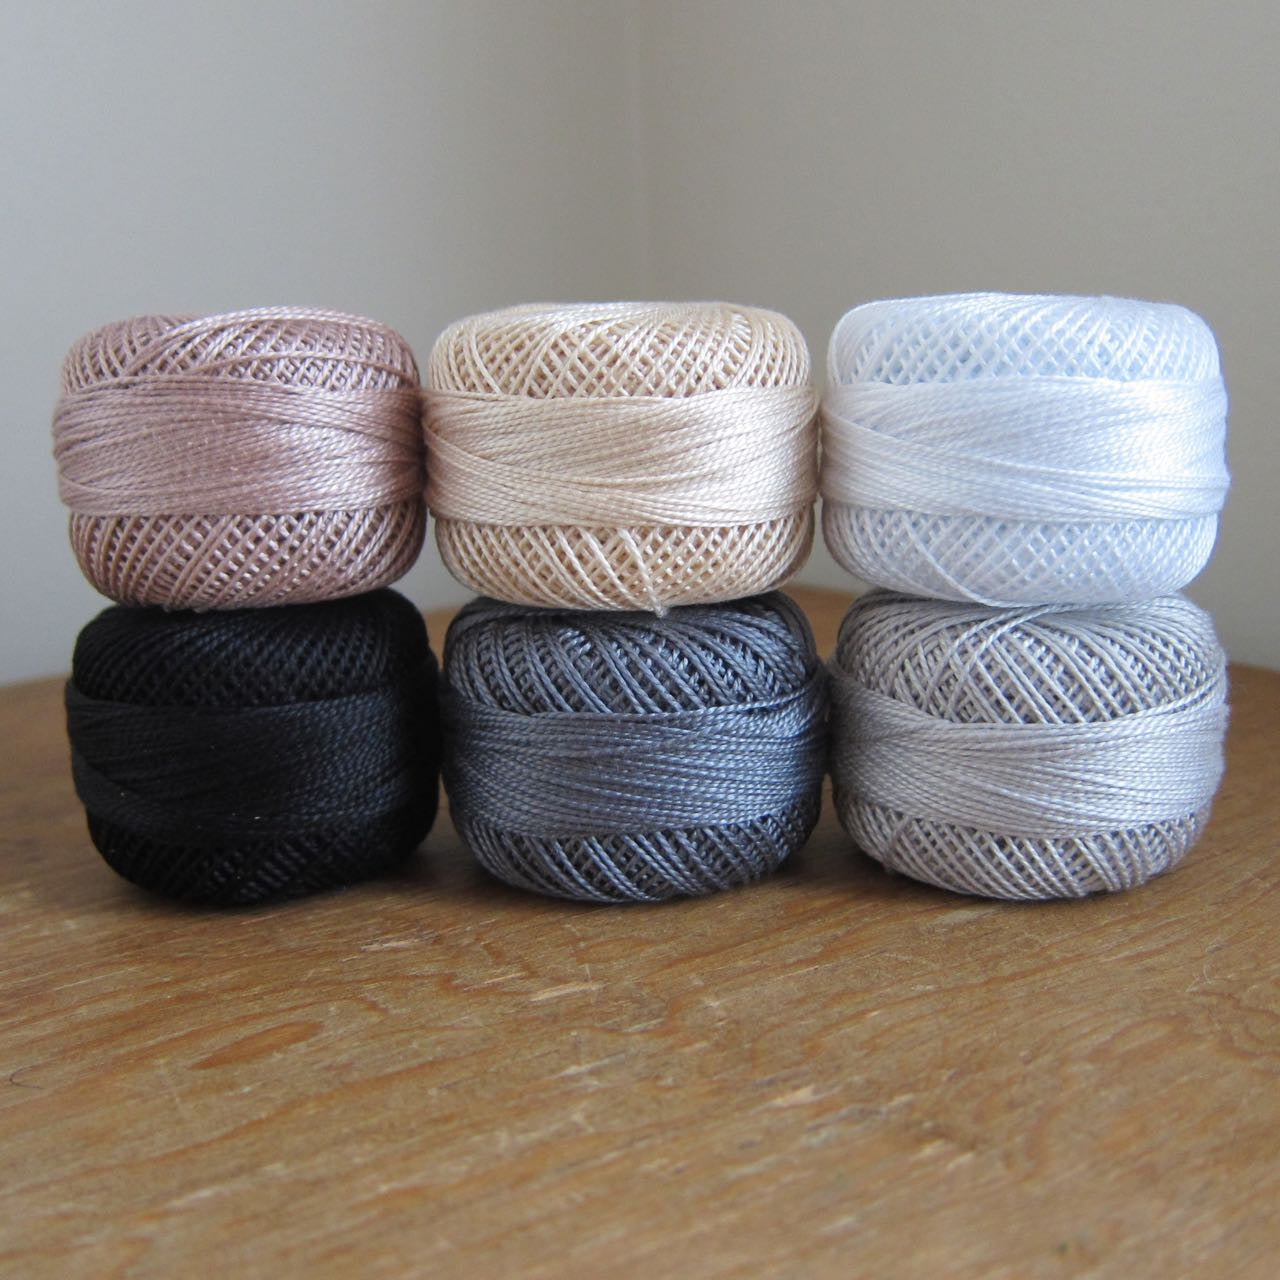 Neutrals Pearl Cotton Thread Set (Size 8) Perle Cotton - Snuggly Monkey